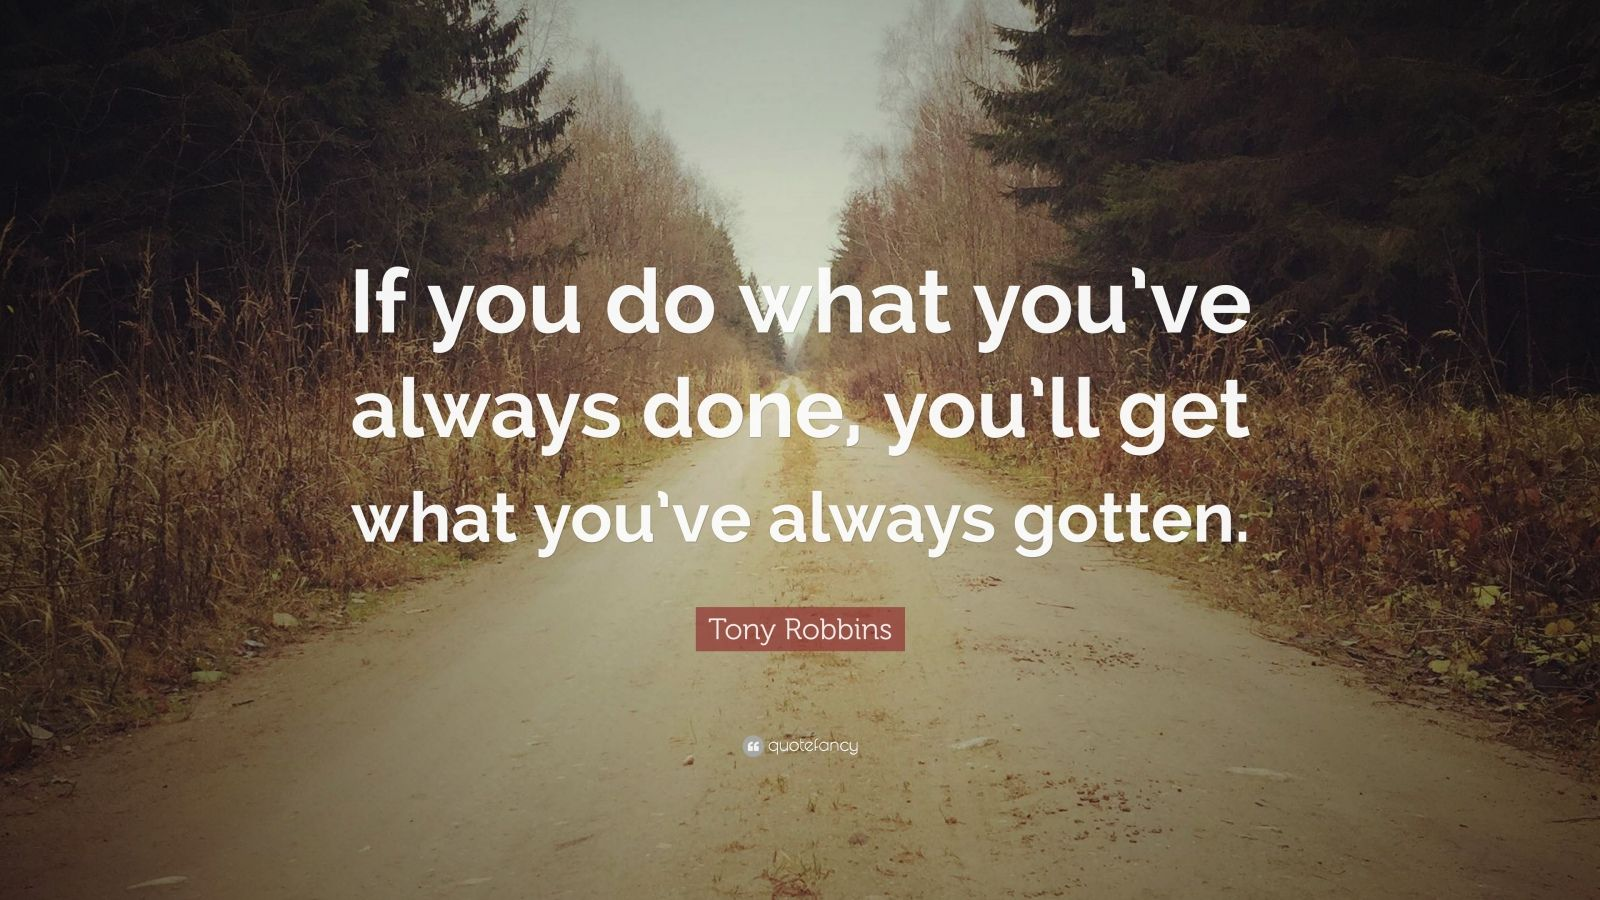 https://quotefancy.com/media/wallpaper/1600x900/237687-Tony-Robbins-Quote-If-you-do-what-you-ve-always-done-you-ll-get.jpg